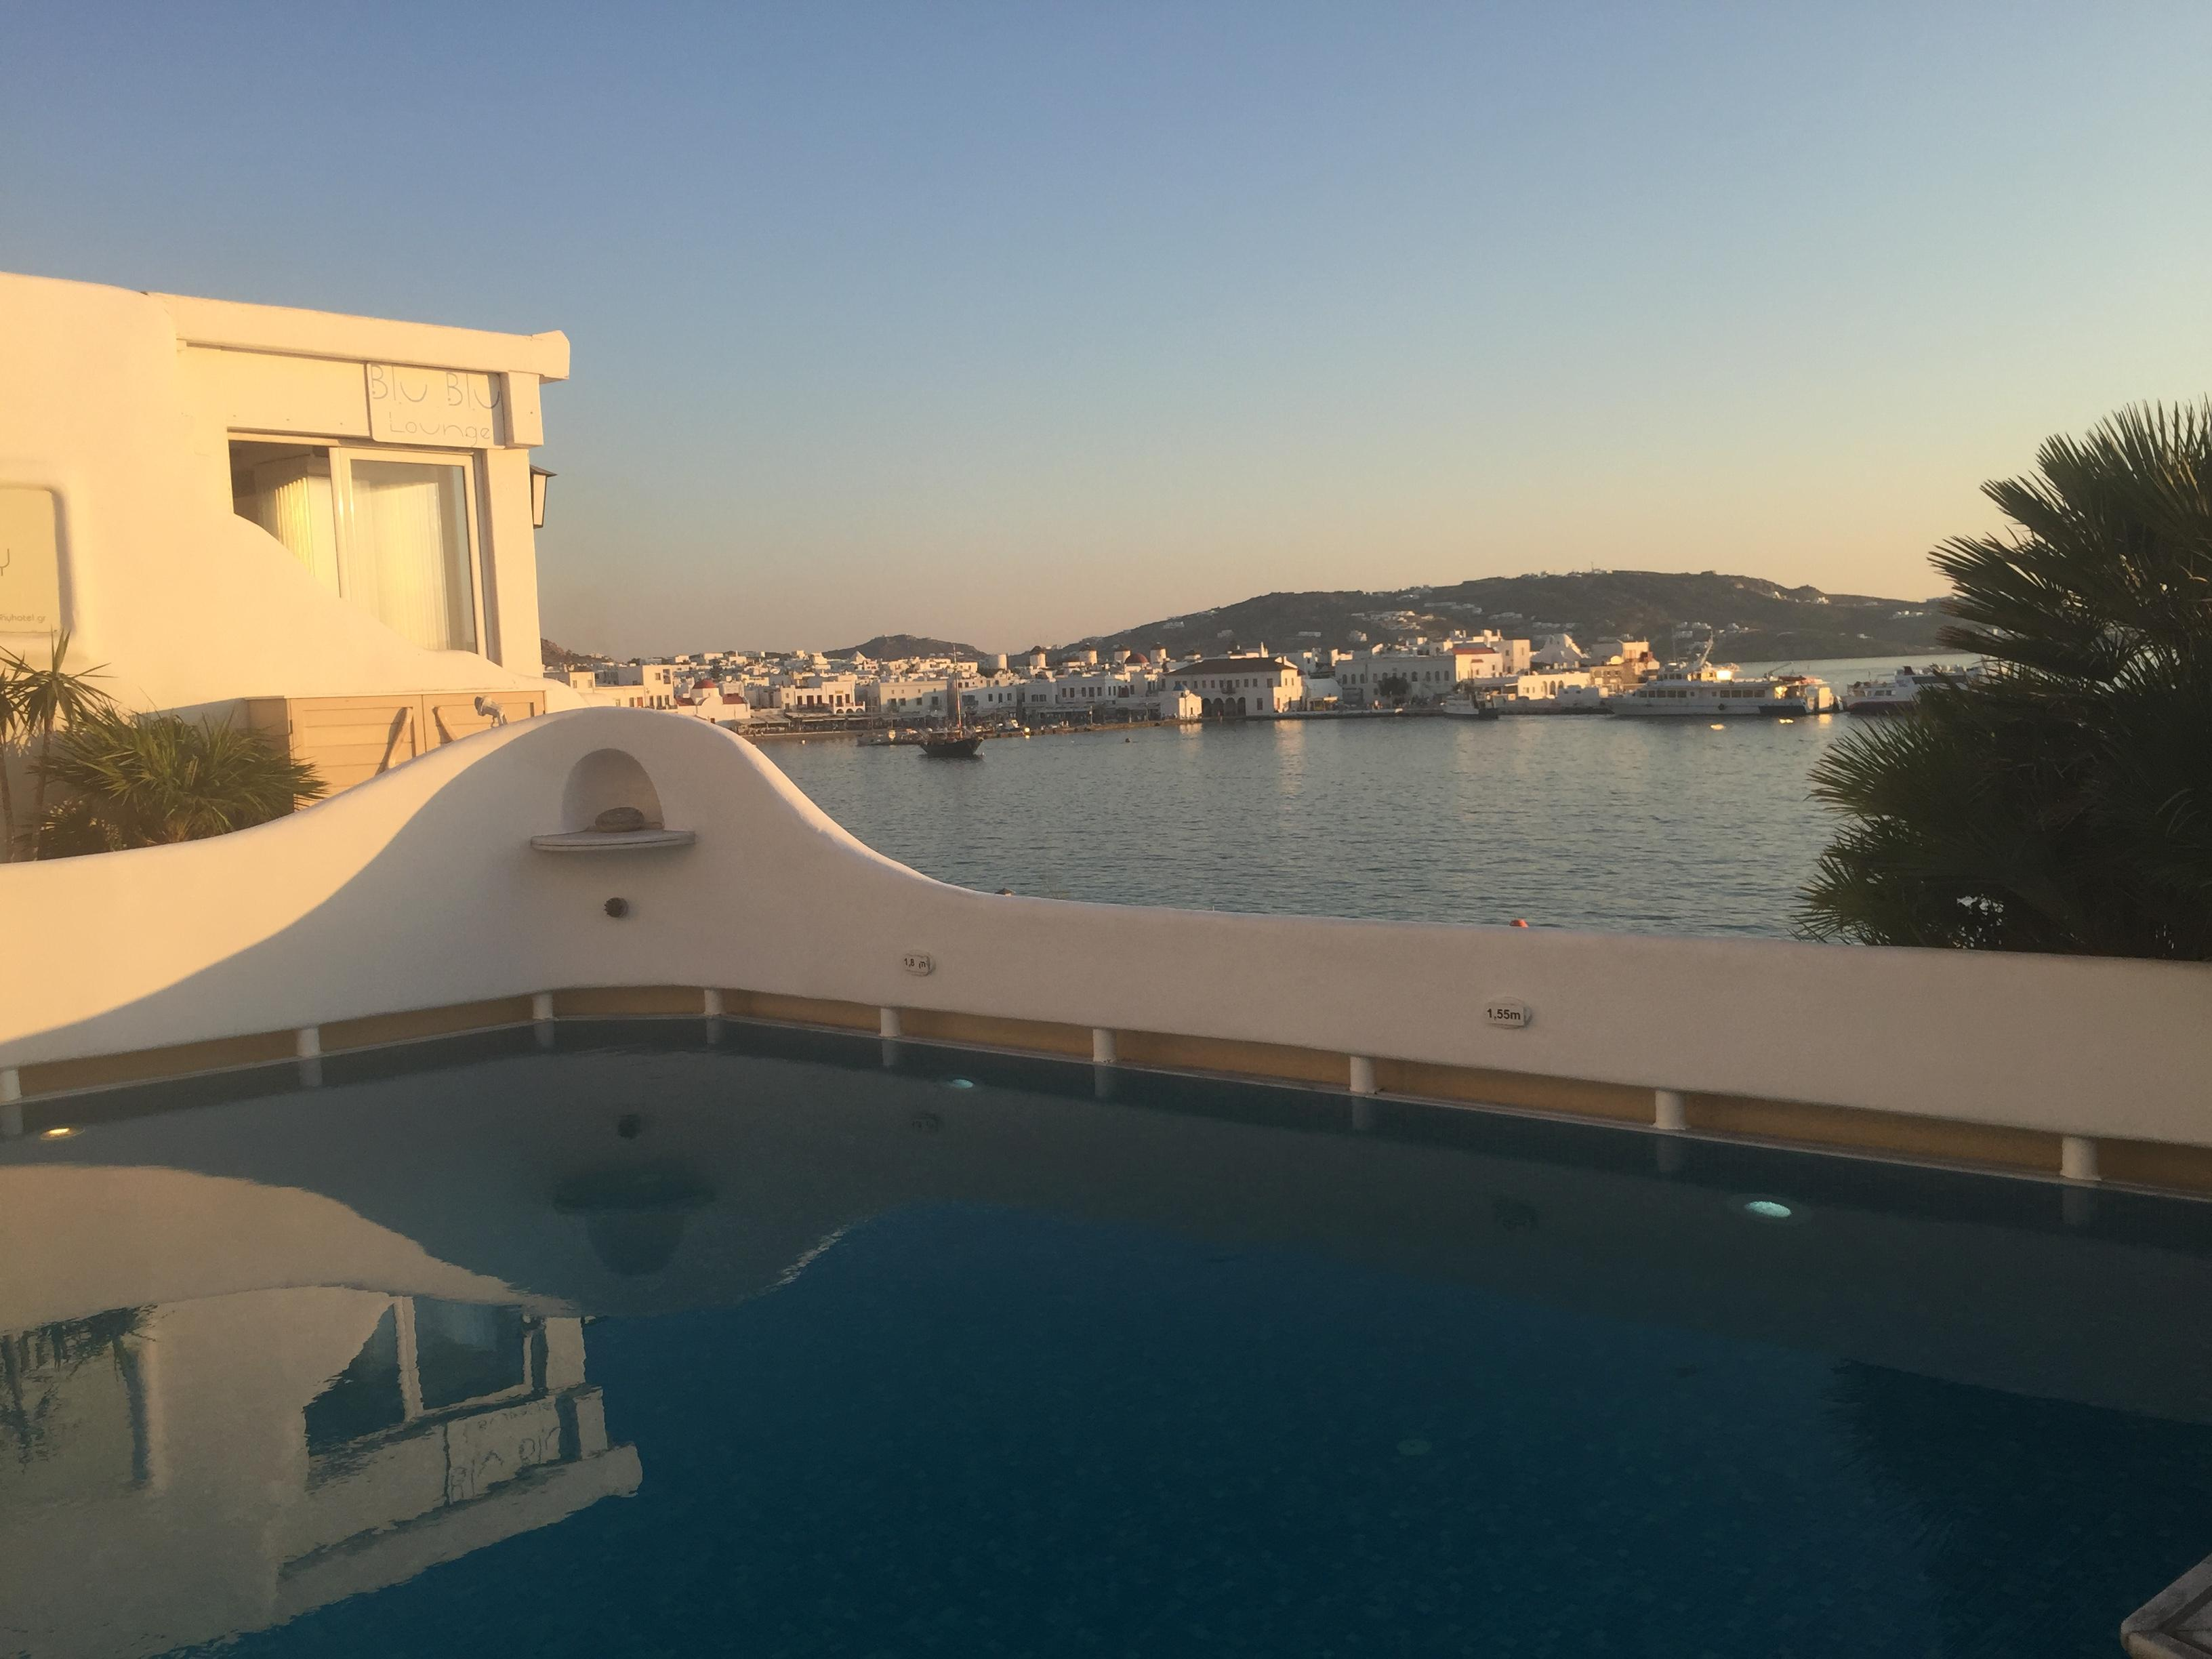 The pool overlooking the sea